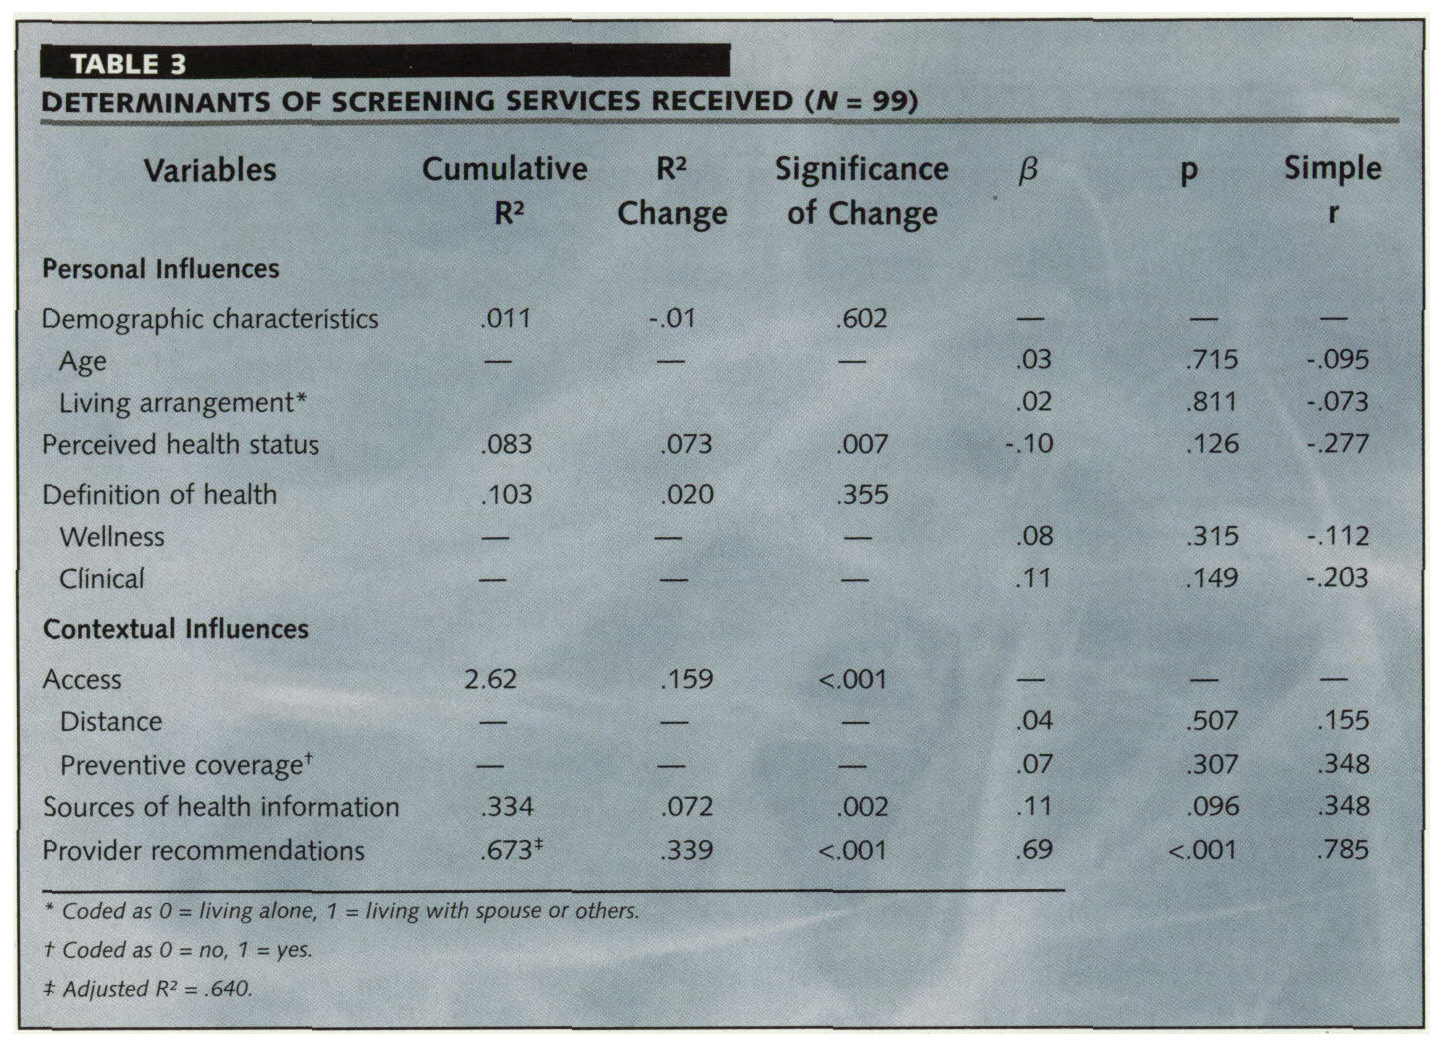 TABLE 3DETERMINANTS OF SCREENING SERVICES RECEIVED (N = 99)